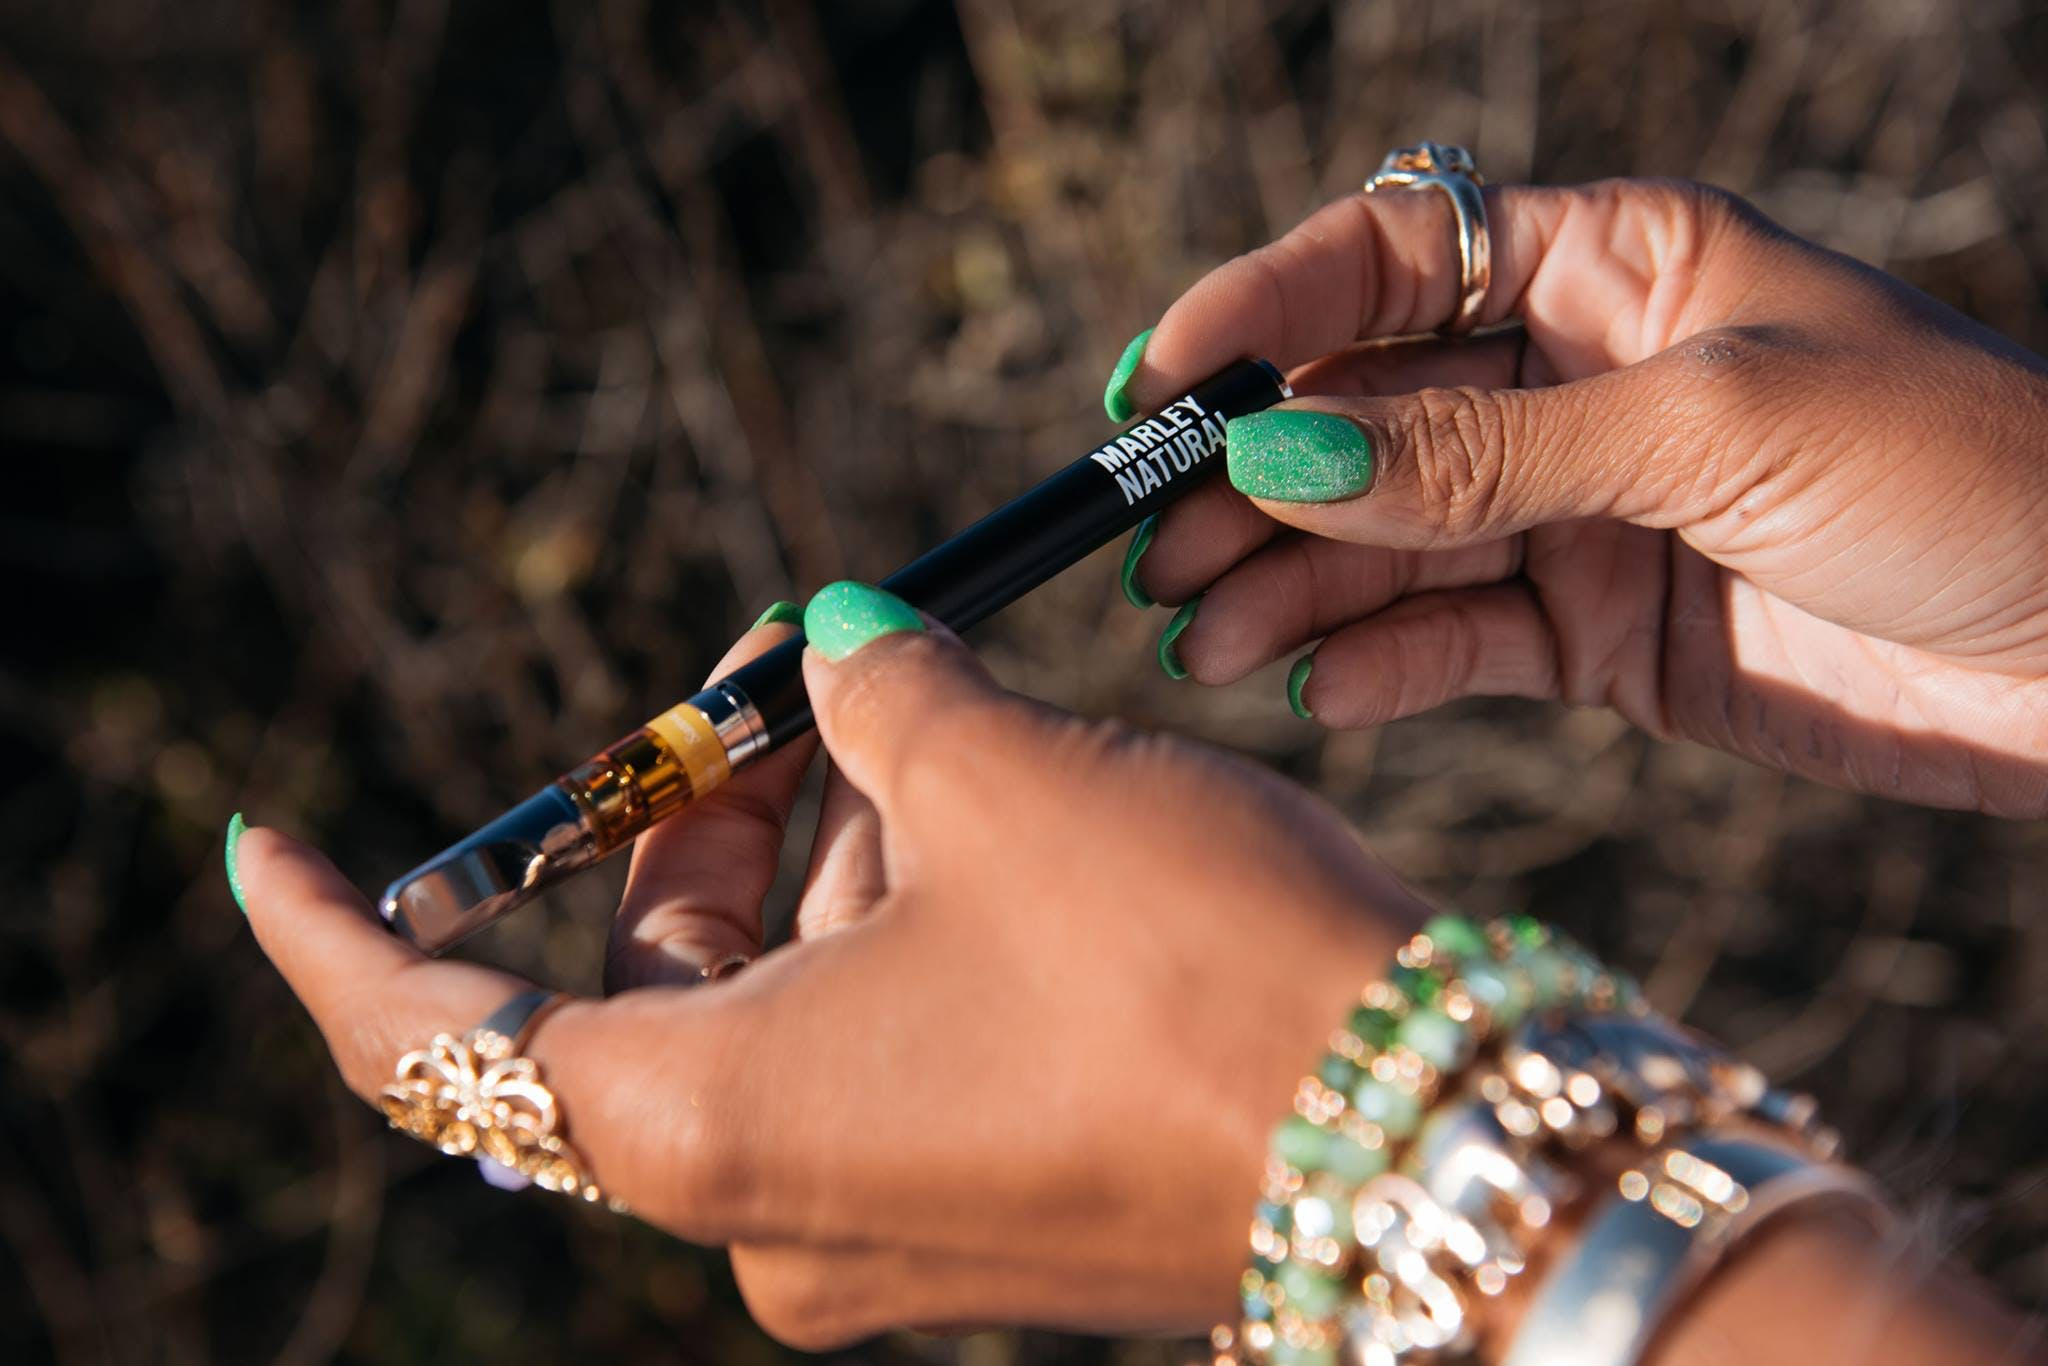 Herbs ultimate guide to finding the best weed vaporizer for you California Considers Licensing Its Own Banks For The Cannabis Industry